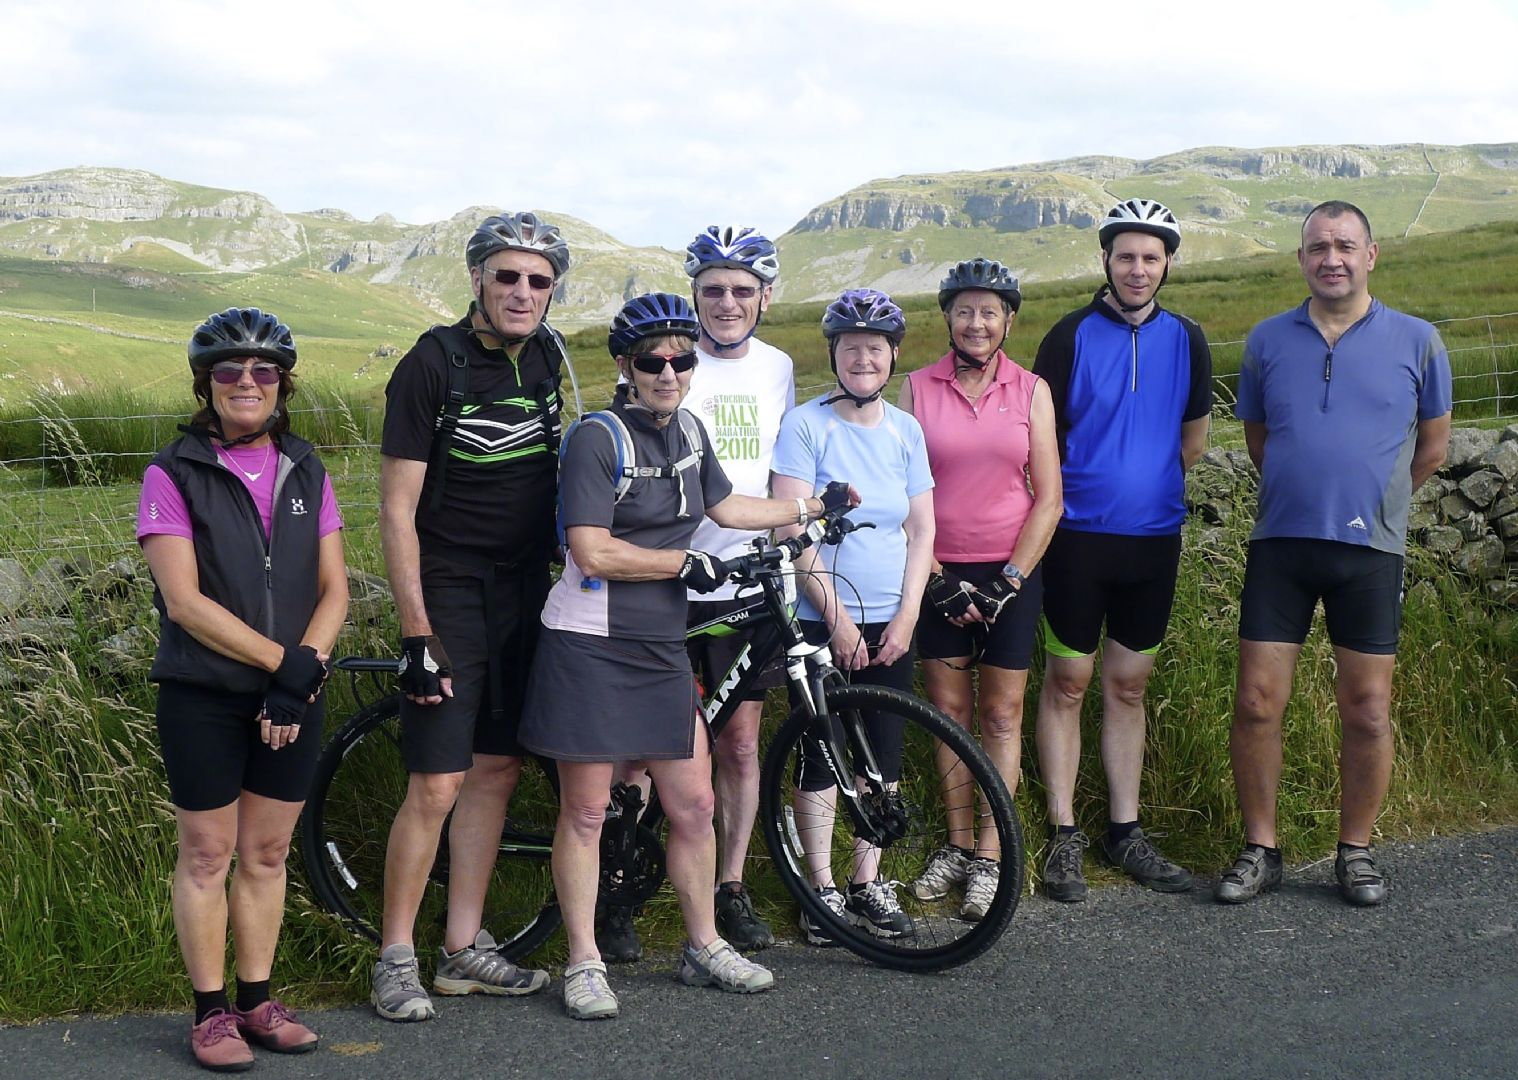 _Customer.85339.11795.jpg - UK - Way of the Roses - Supported Leisure Cycling Holiday - Leisure Cycling